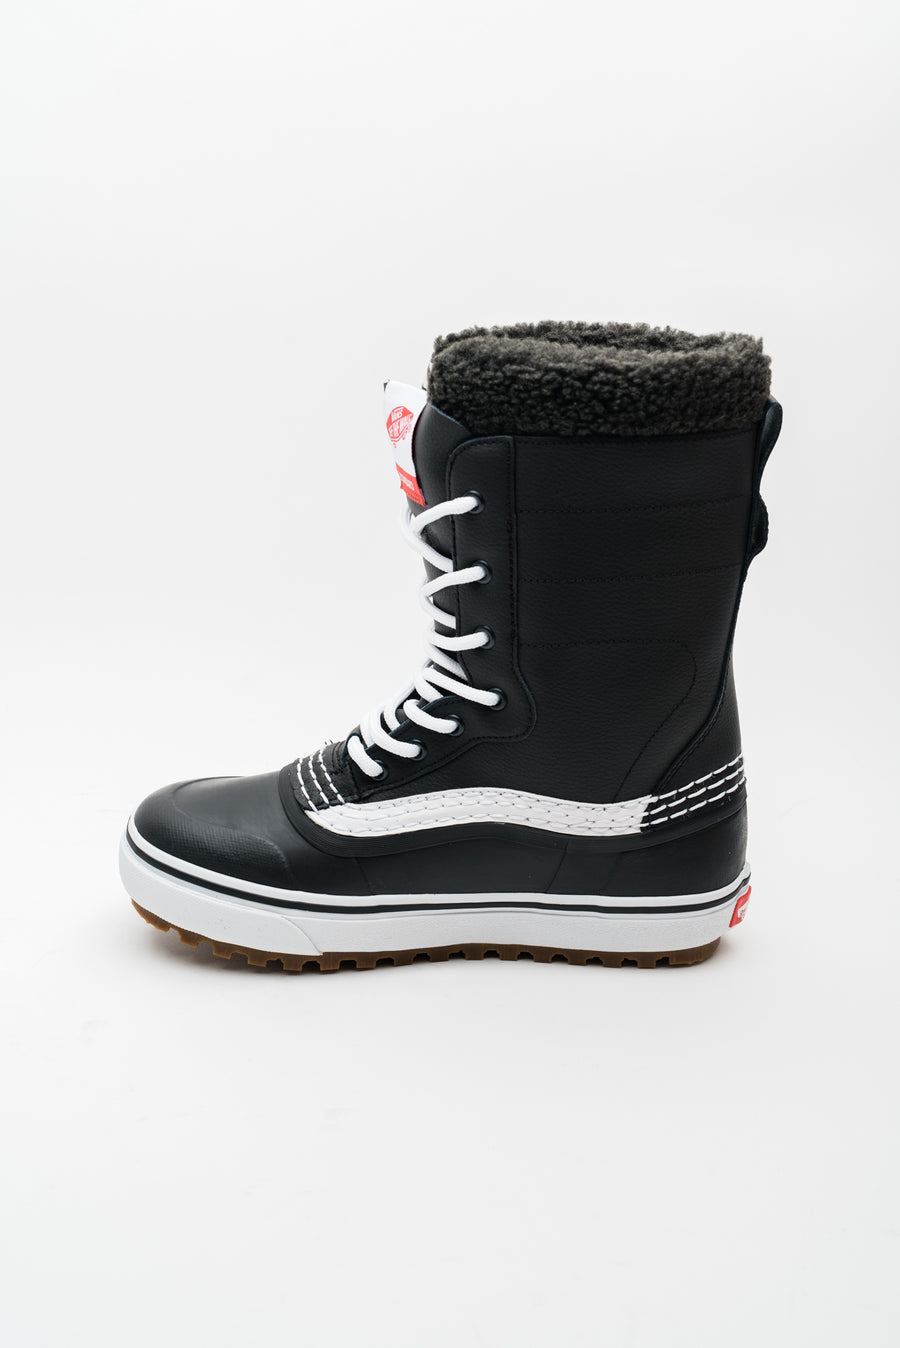 Standard MTE Boot - Black